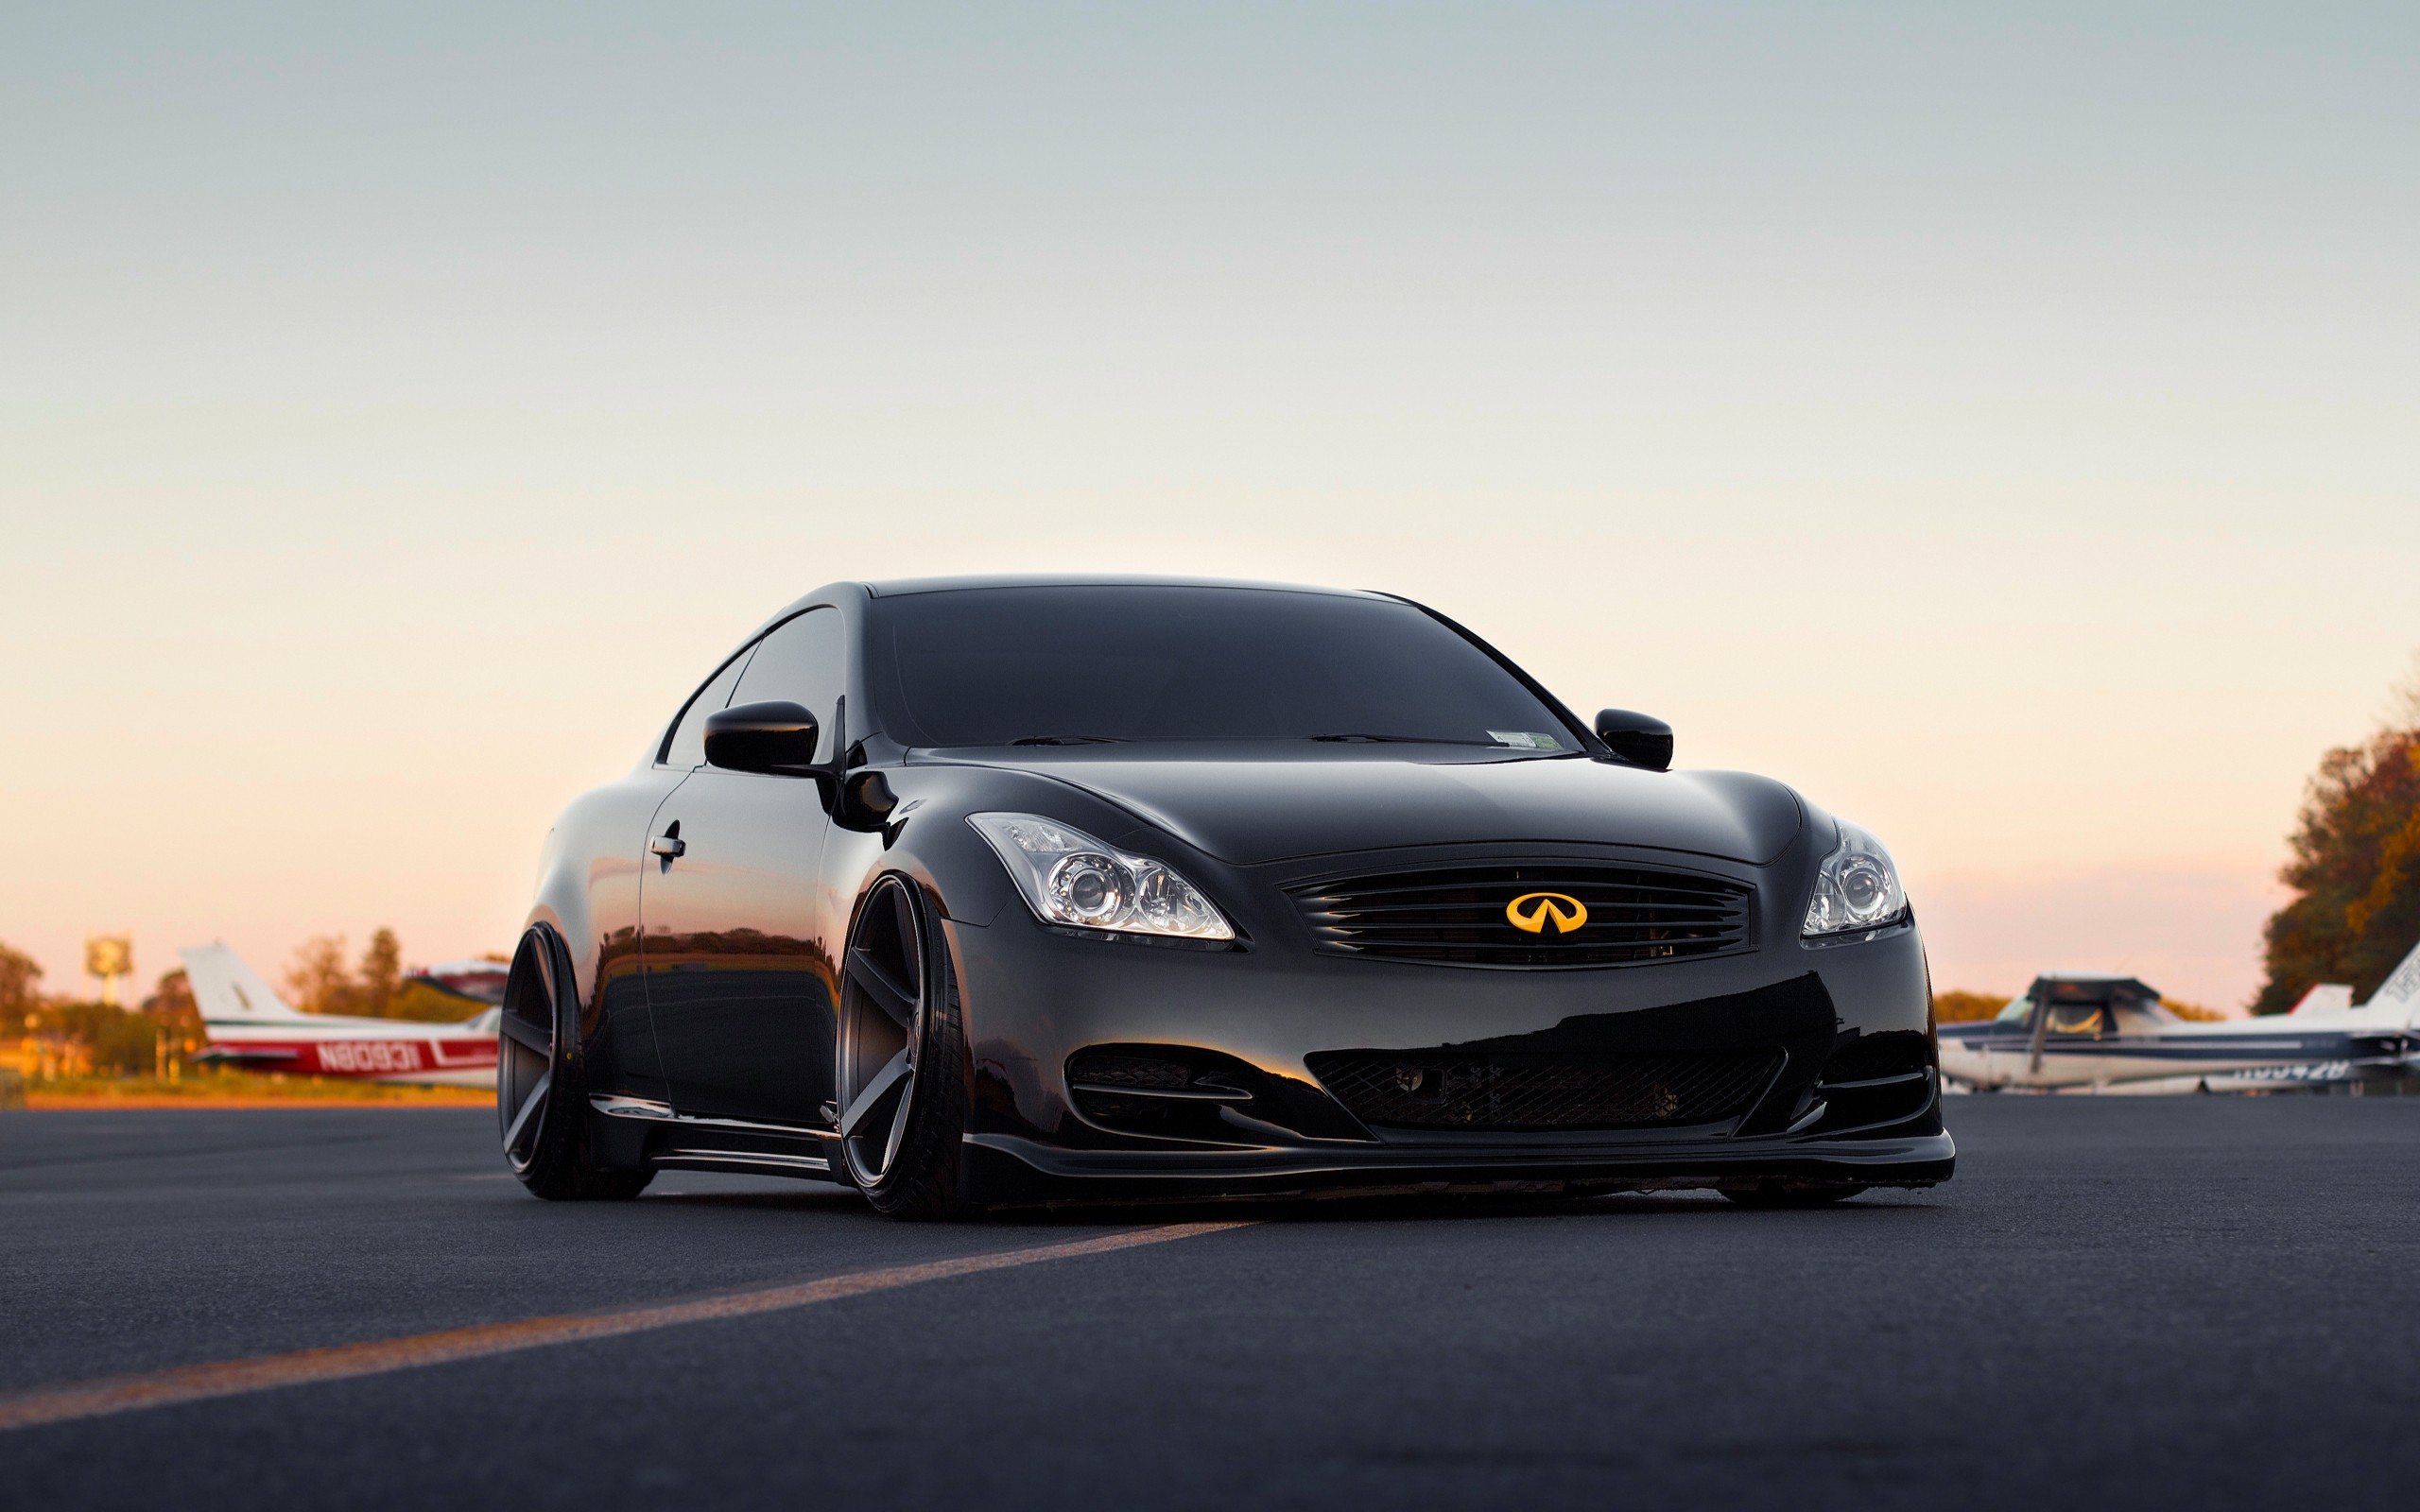 infiniti g35 wallpaper background